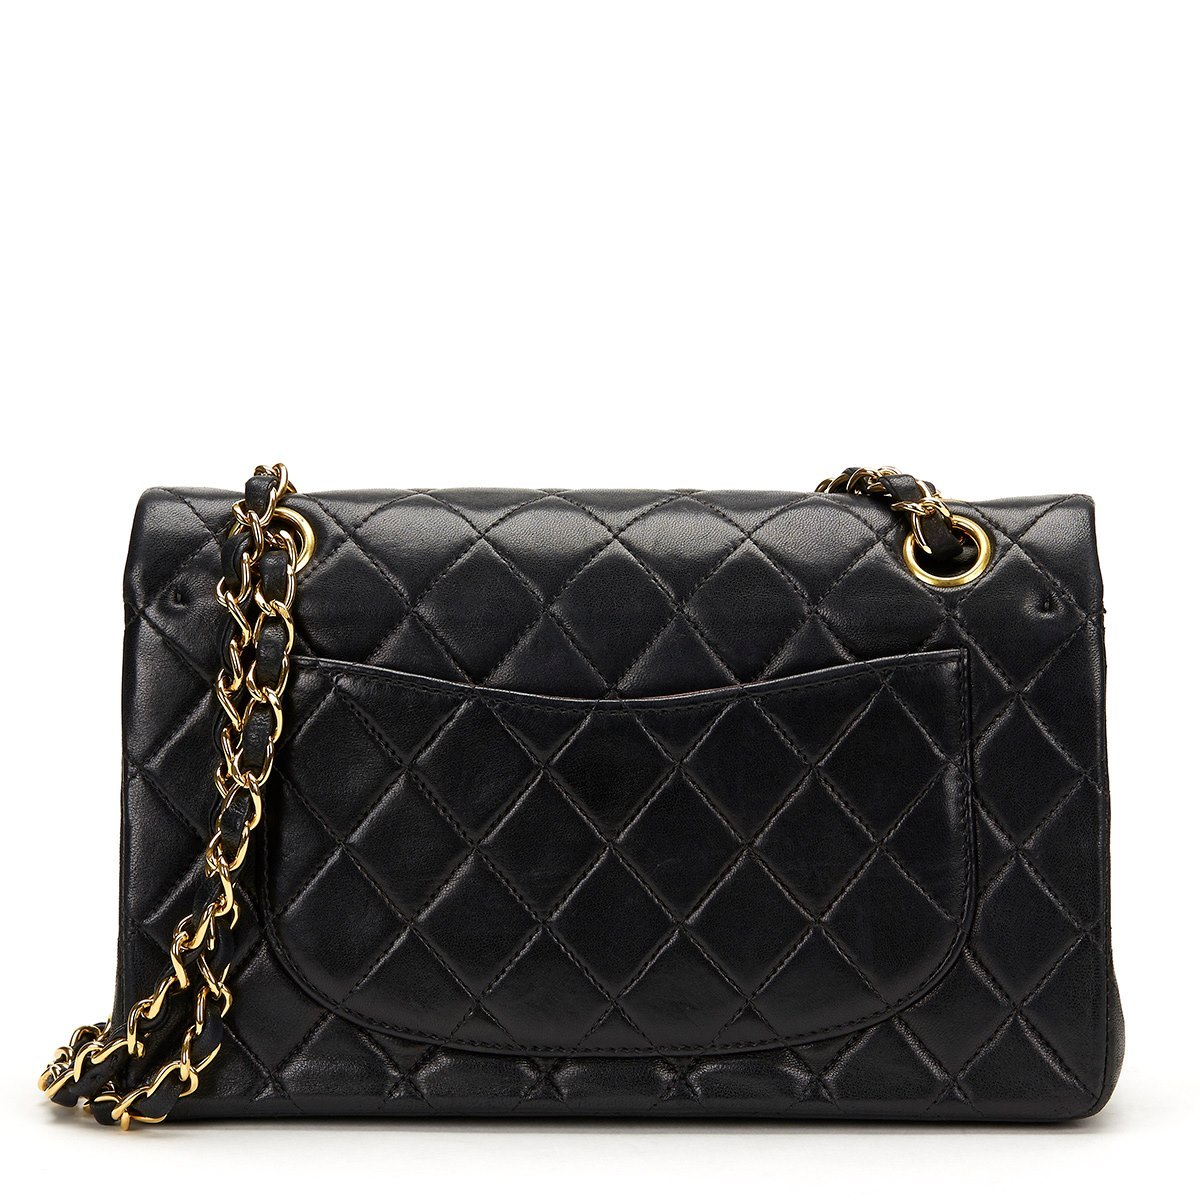 93570e2ac6e9 Chanel Black Quilted Lambskin Classic Small Double Flap Bag ...